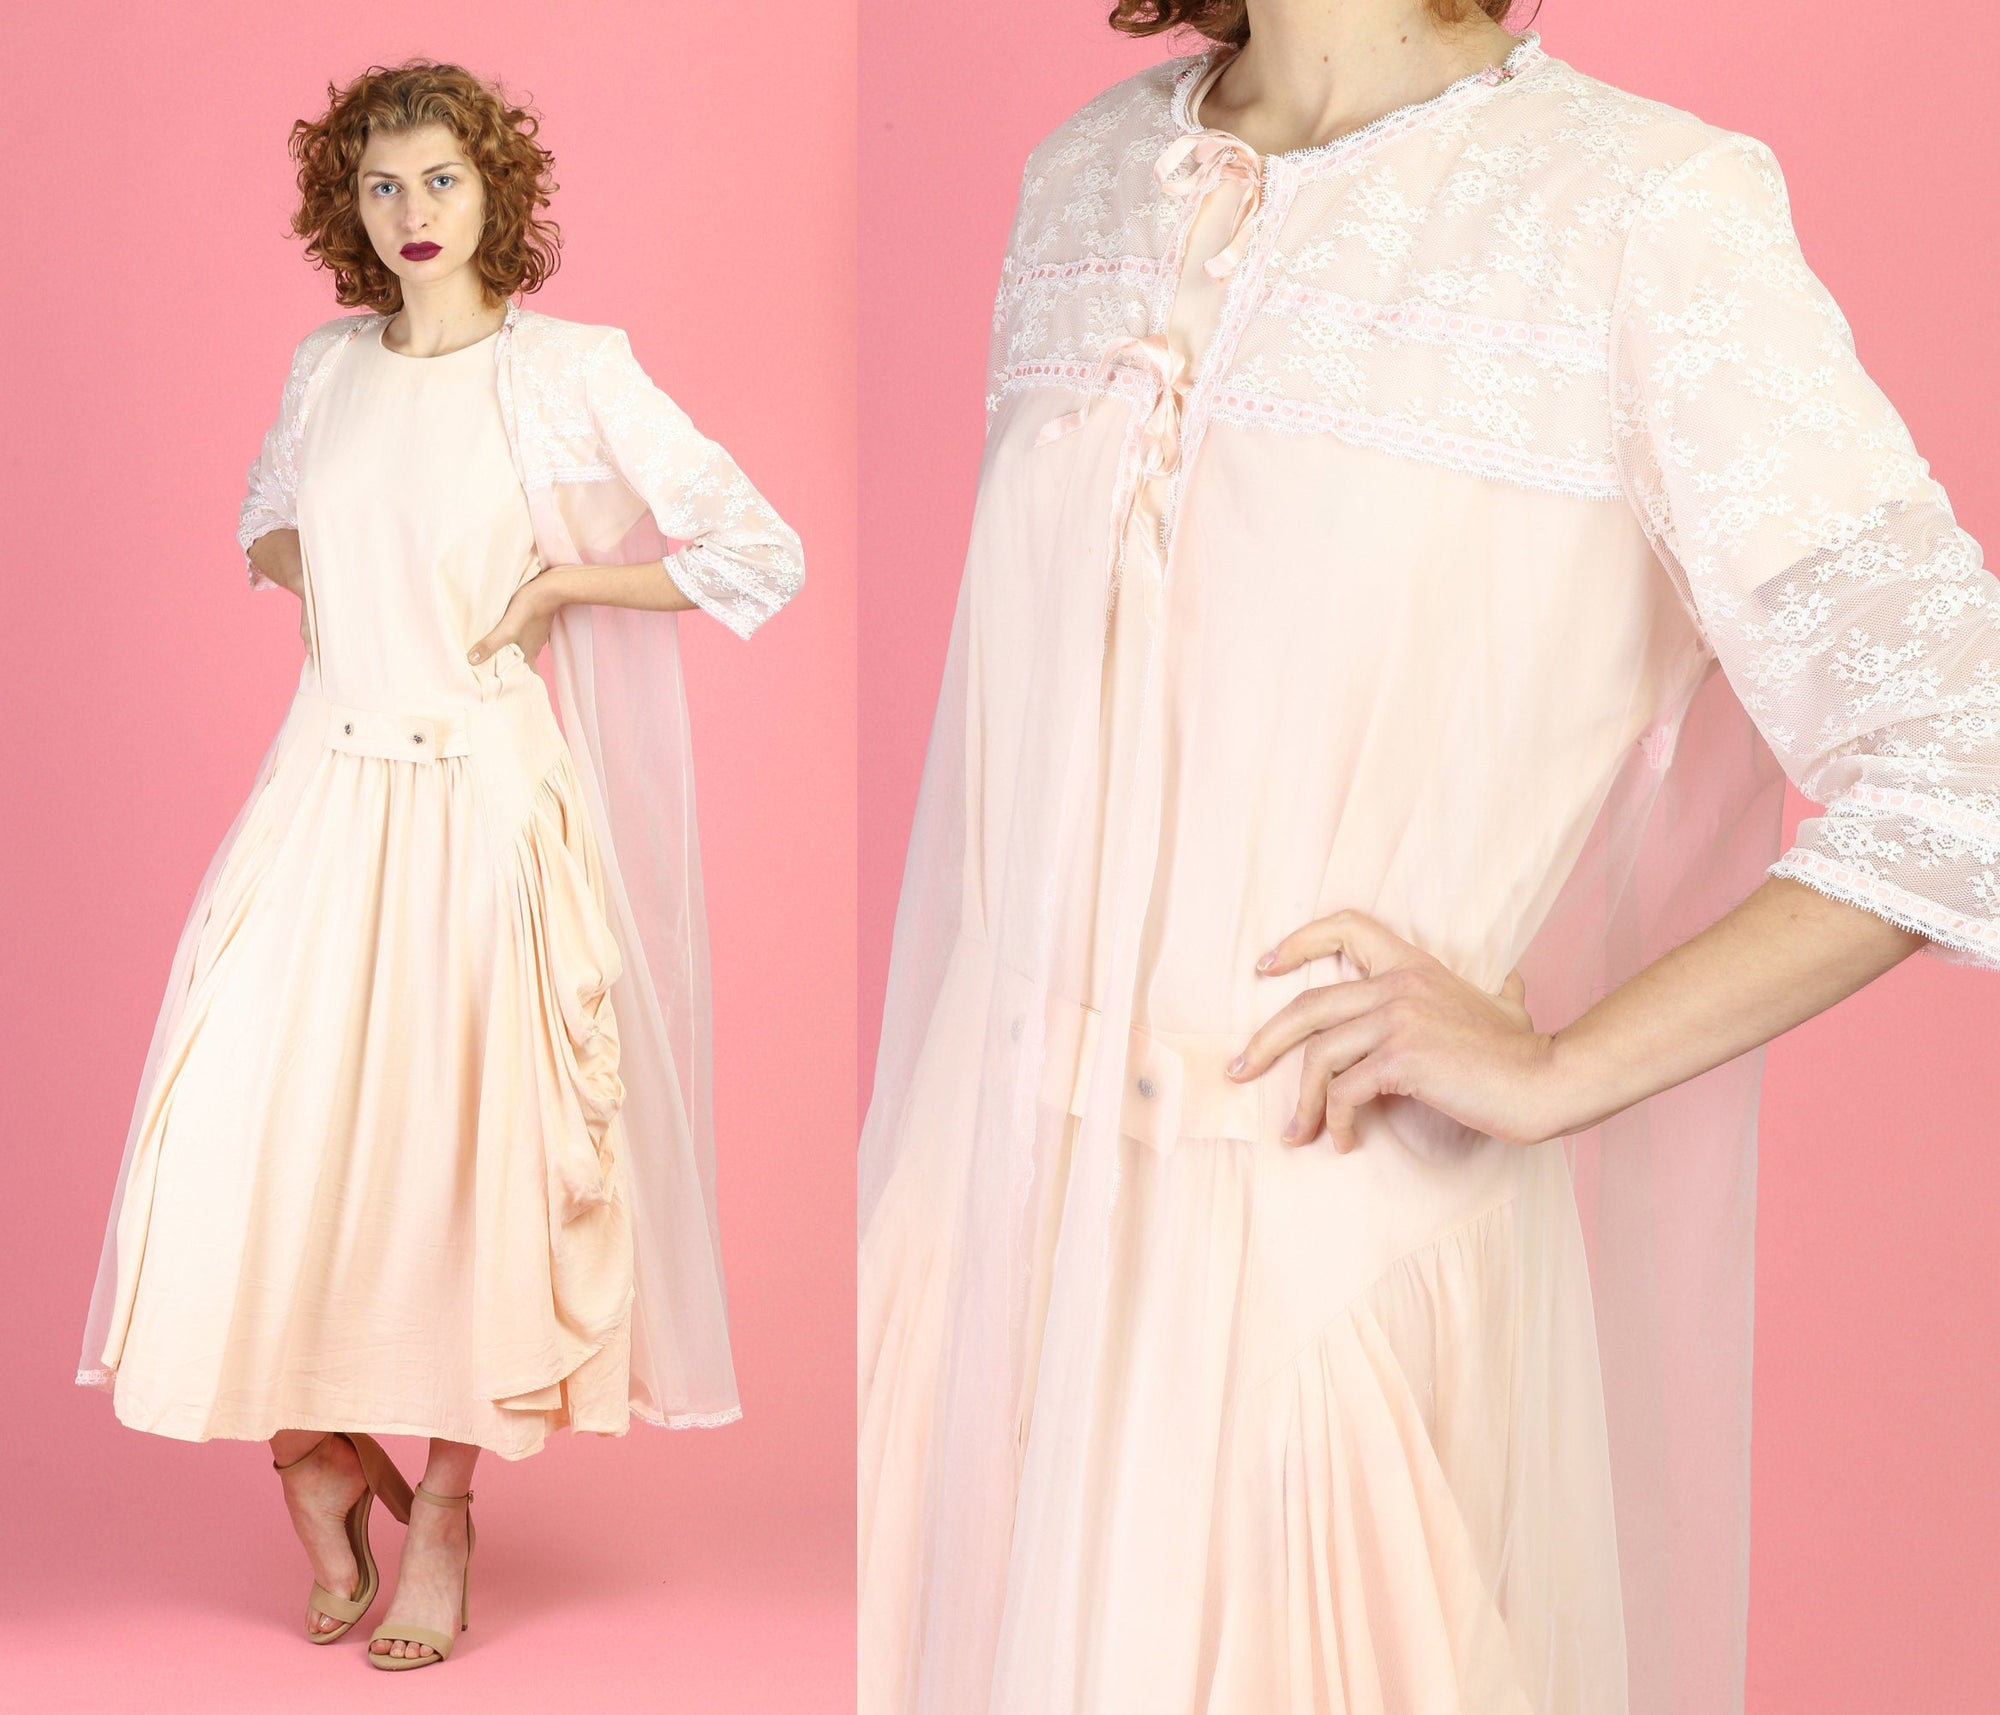 60s Sheer Pink Peignoir Robe - Large